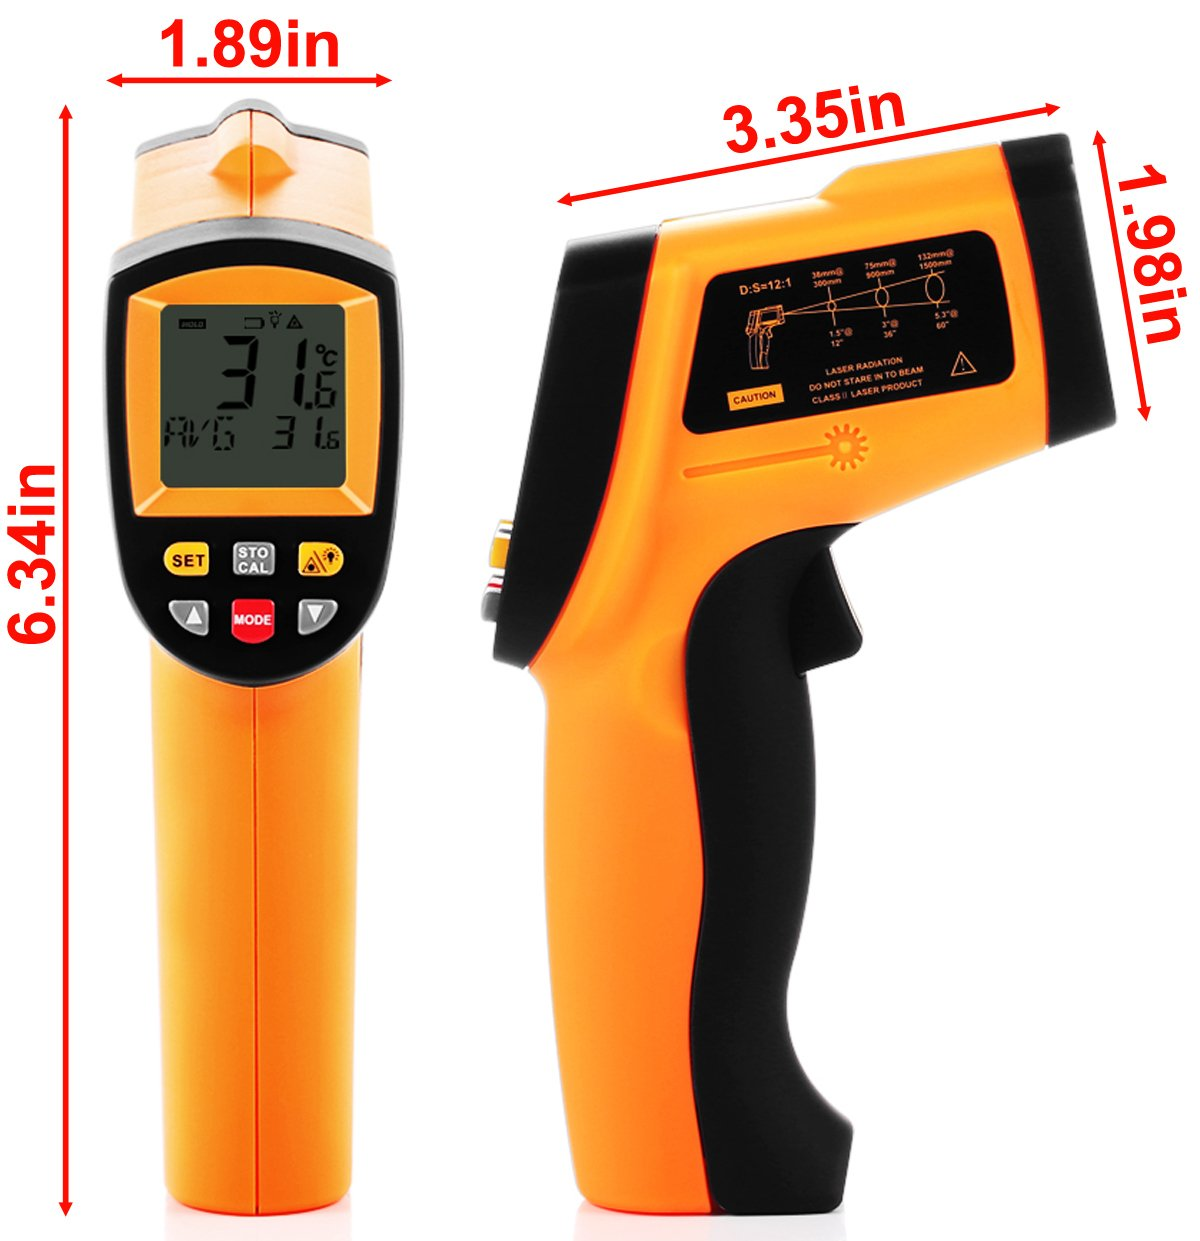 Tekit Non-Contact Laser Infrared Digital Thermometer, -50 ~ 900℃ Temperature Measuring Range, Handheld Laser Target Pointer / Backlight / Auto Power On/Off by Tekit (Image #5)